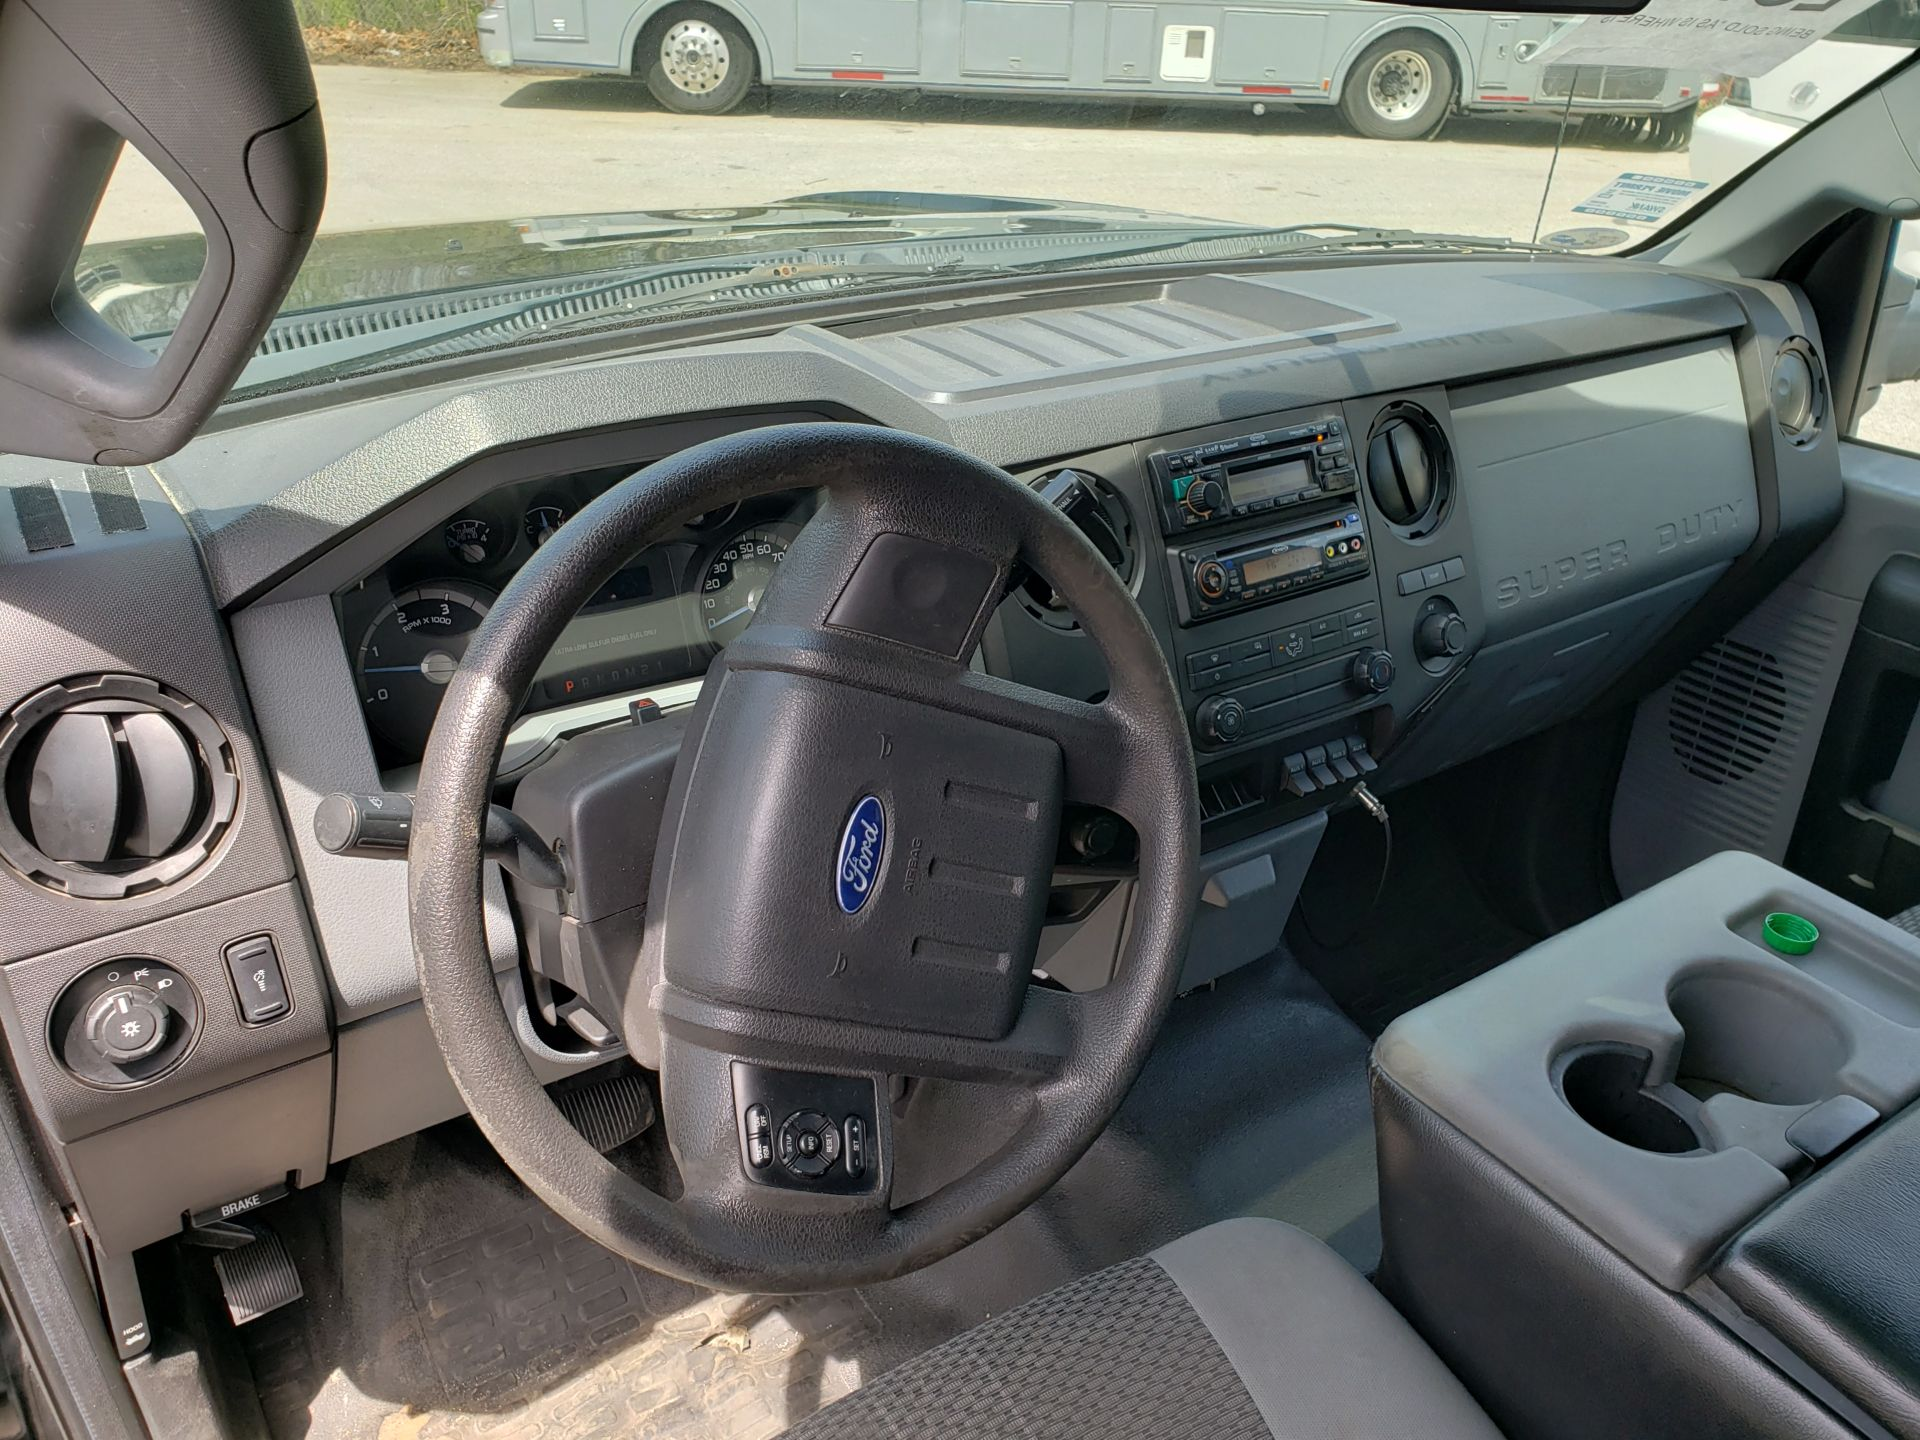 2013 Ford F550SD XL Grech Motors 33-Pass Shuttle Bus - Image 6 of 18